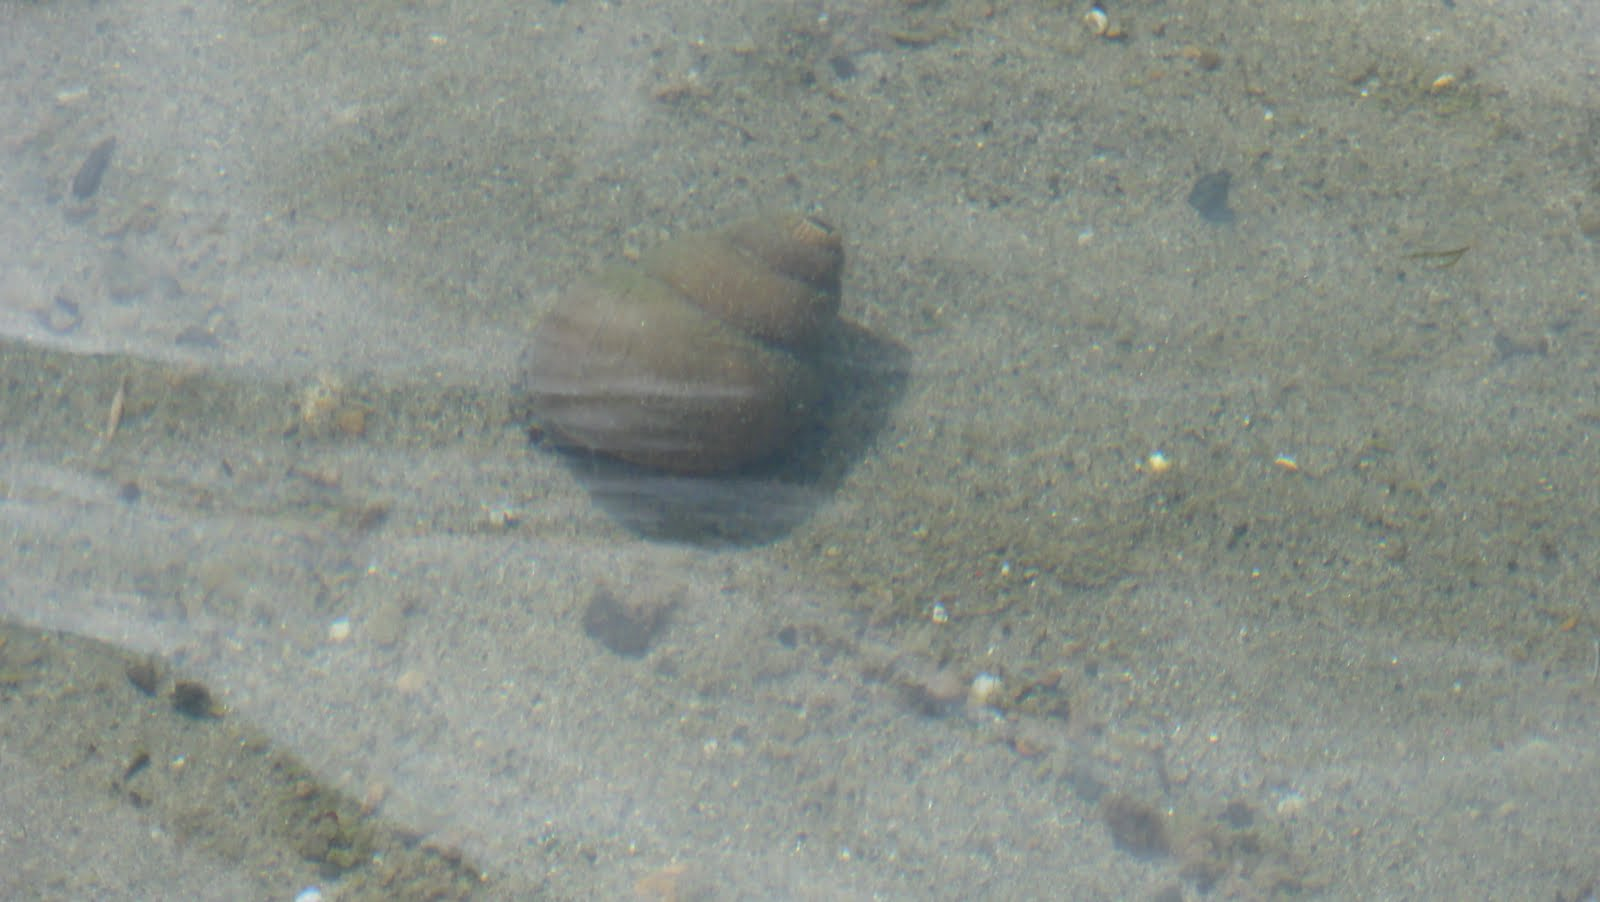 Image shows a large tan snail shell underwater.